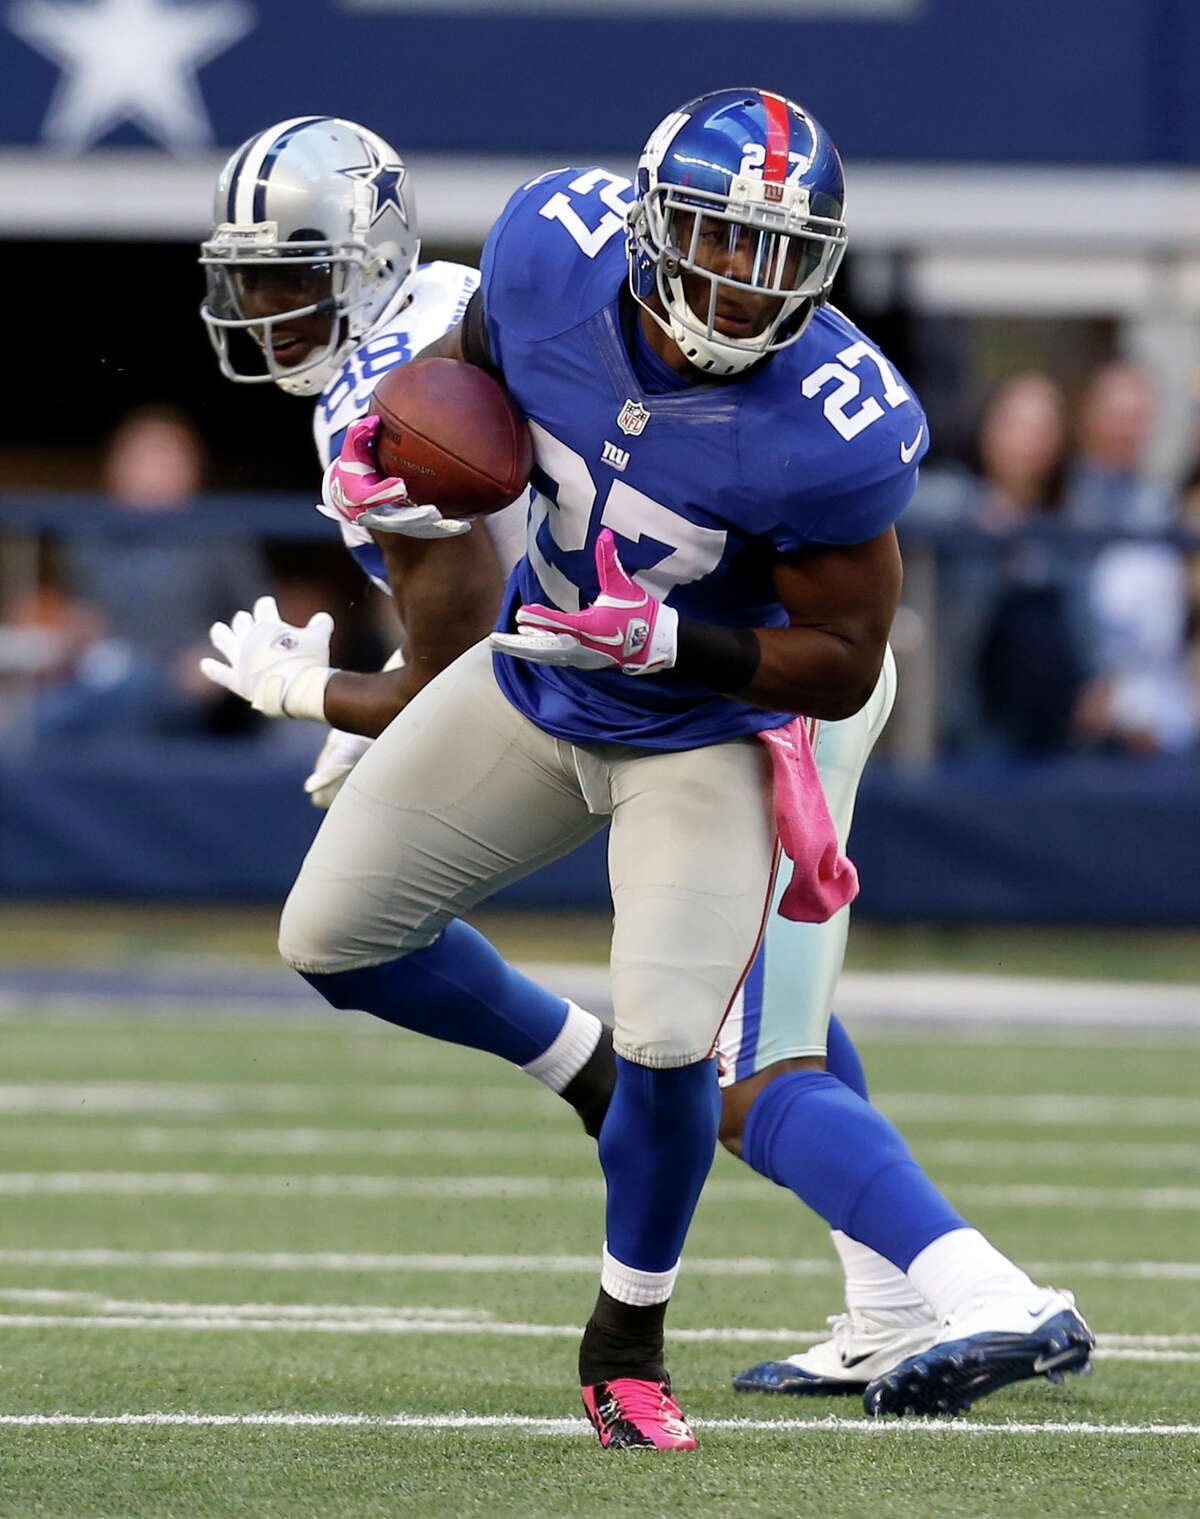 New York Giants strong safety Stevie Brown (27) intercepts a pass from Dallas Cowboys' Tony Romo during the first half of an NFL football game Sunday, Oct. 28, 2012 in Arlington, Texas. (AP Photo/Sharon Ellman)